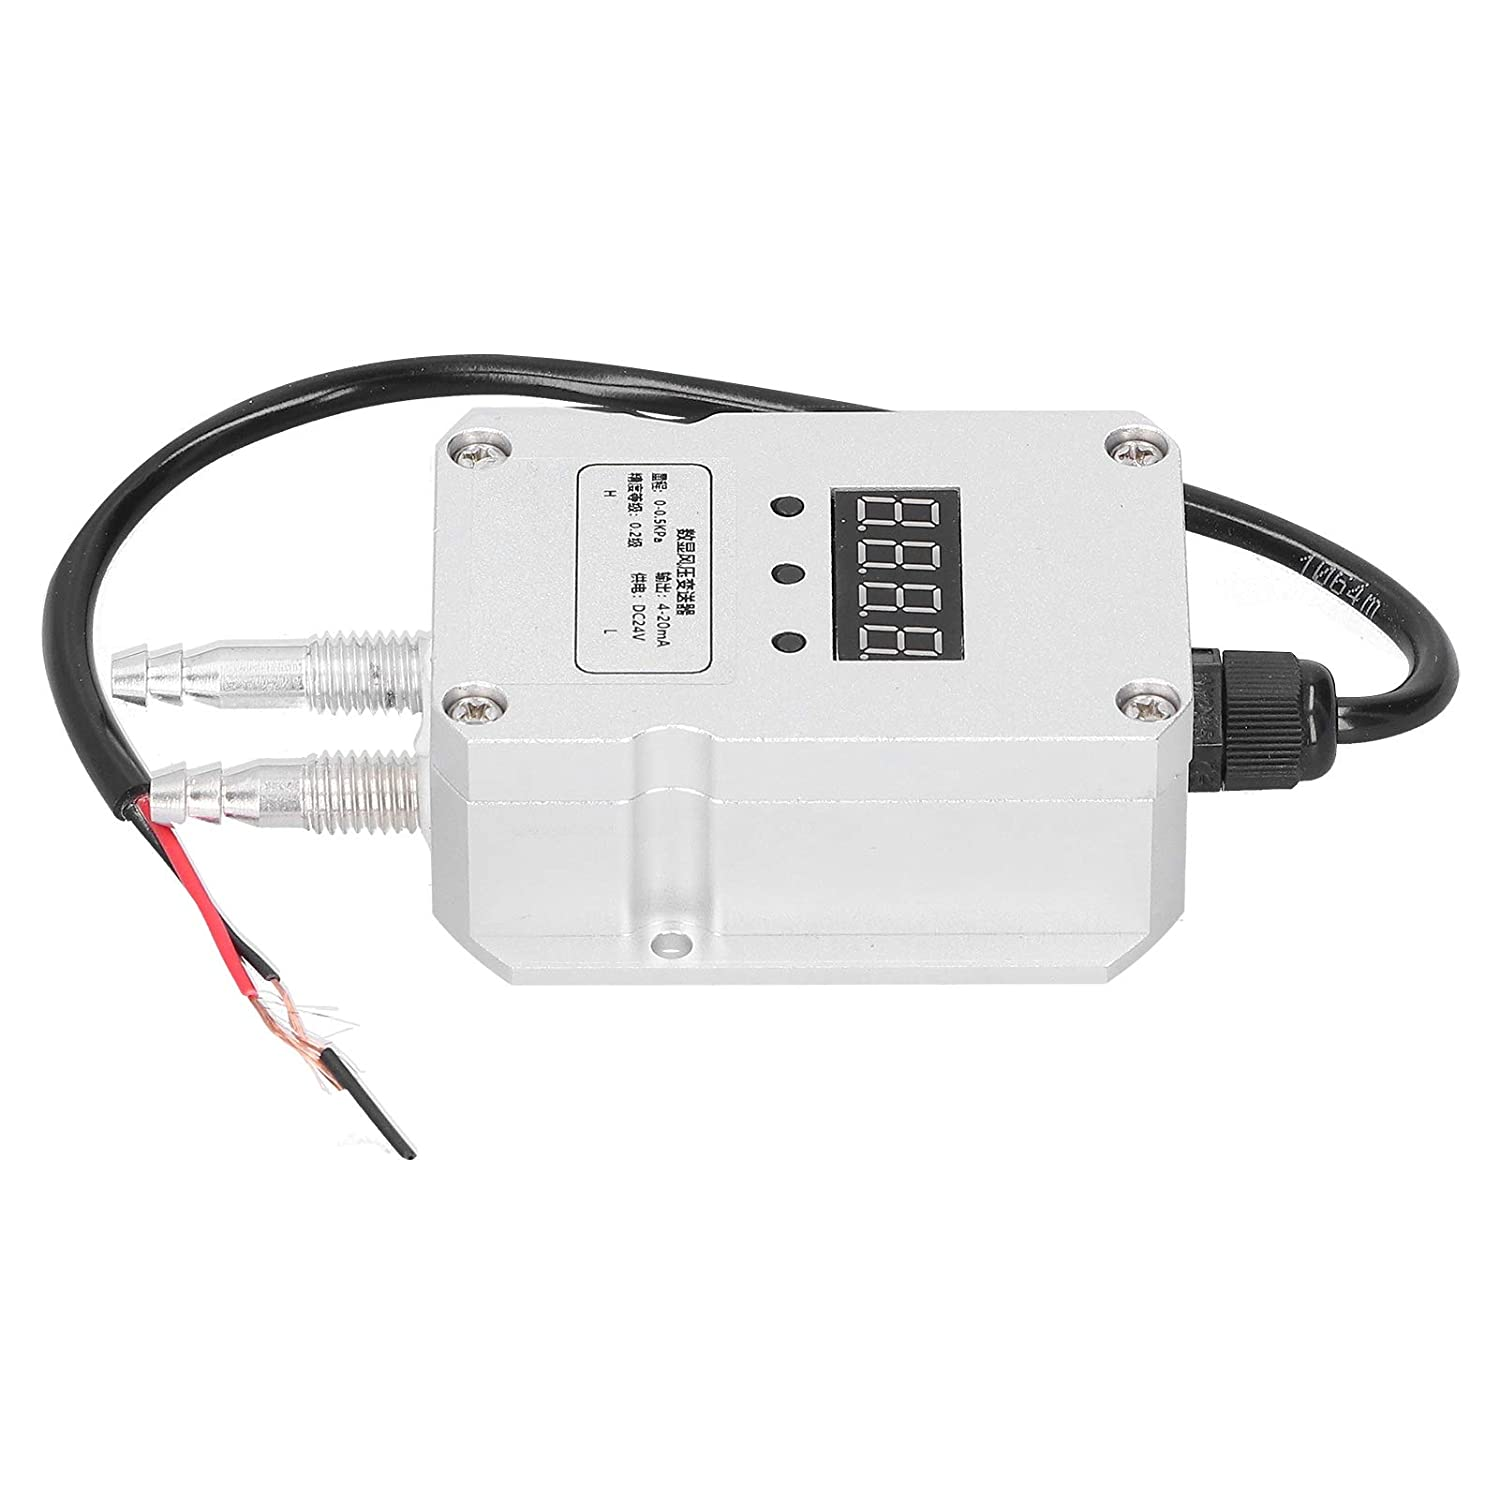 Pressure Finally resale start Transmitter Indianapolis Mall 420mA DC24V Anti Detecti Interference Wind